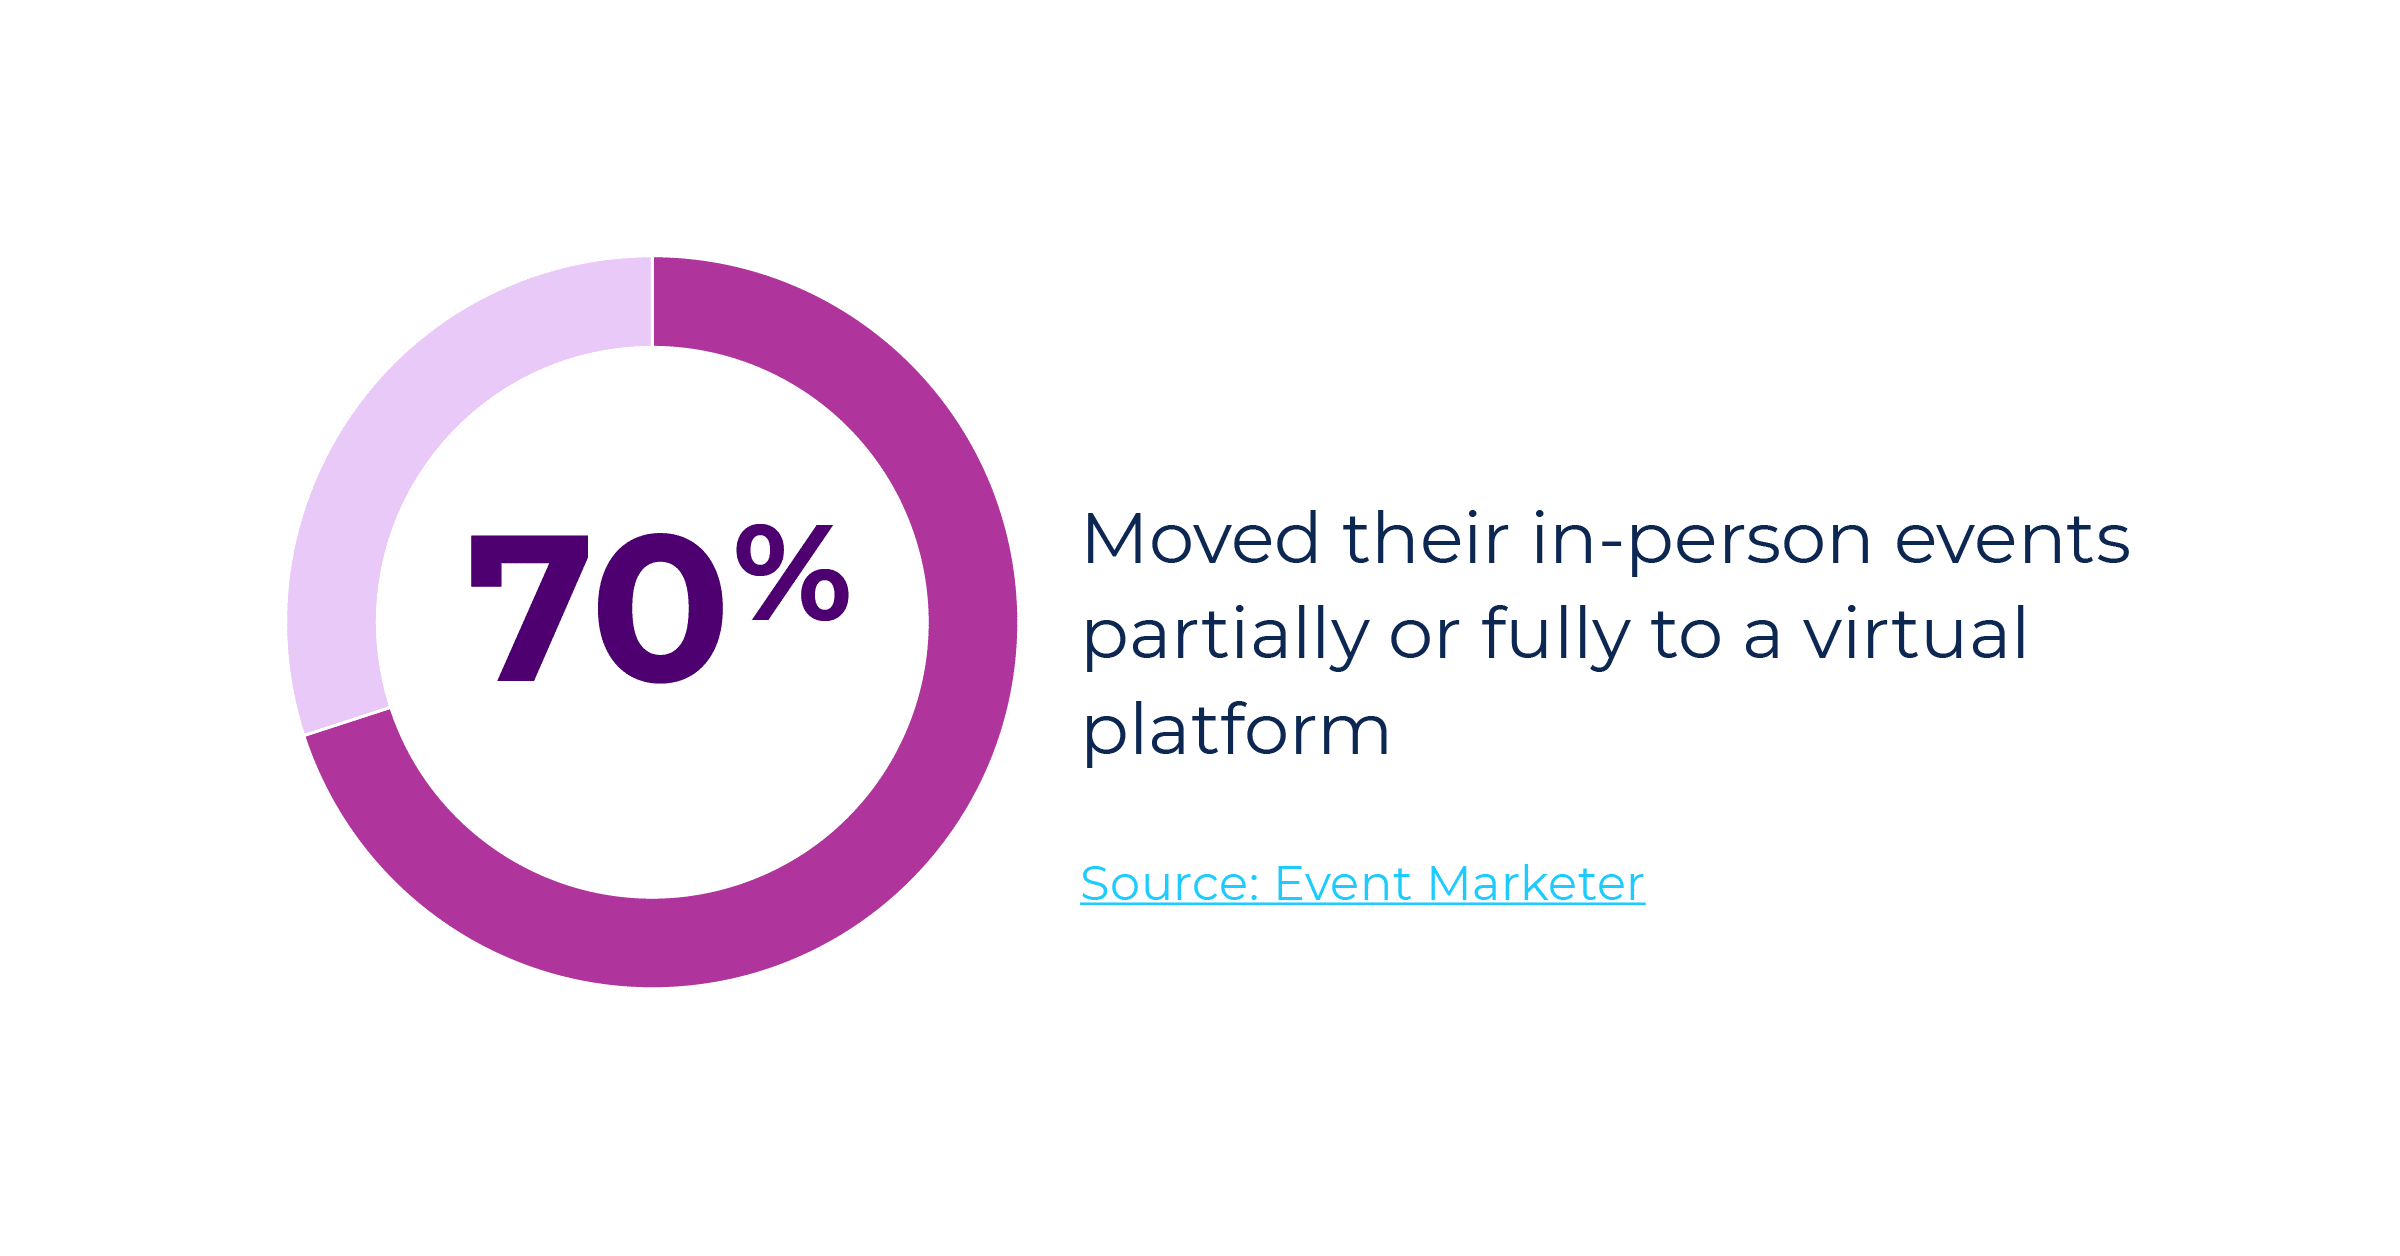 70% of event marketers moved their in-person events partially or fully to a virtual event platform in 2020.